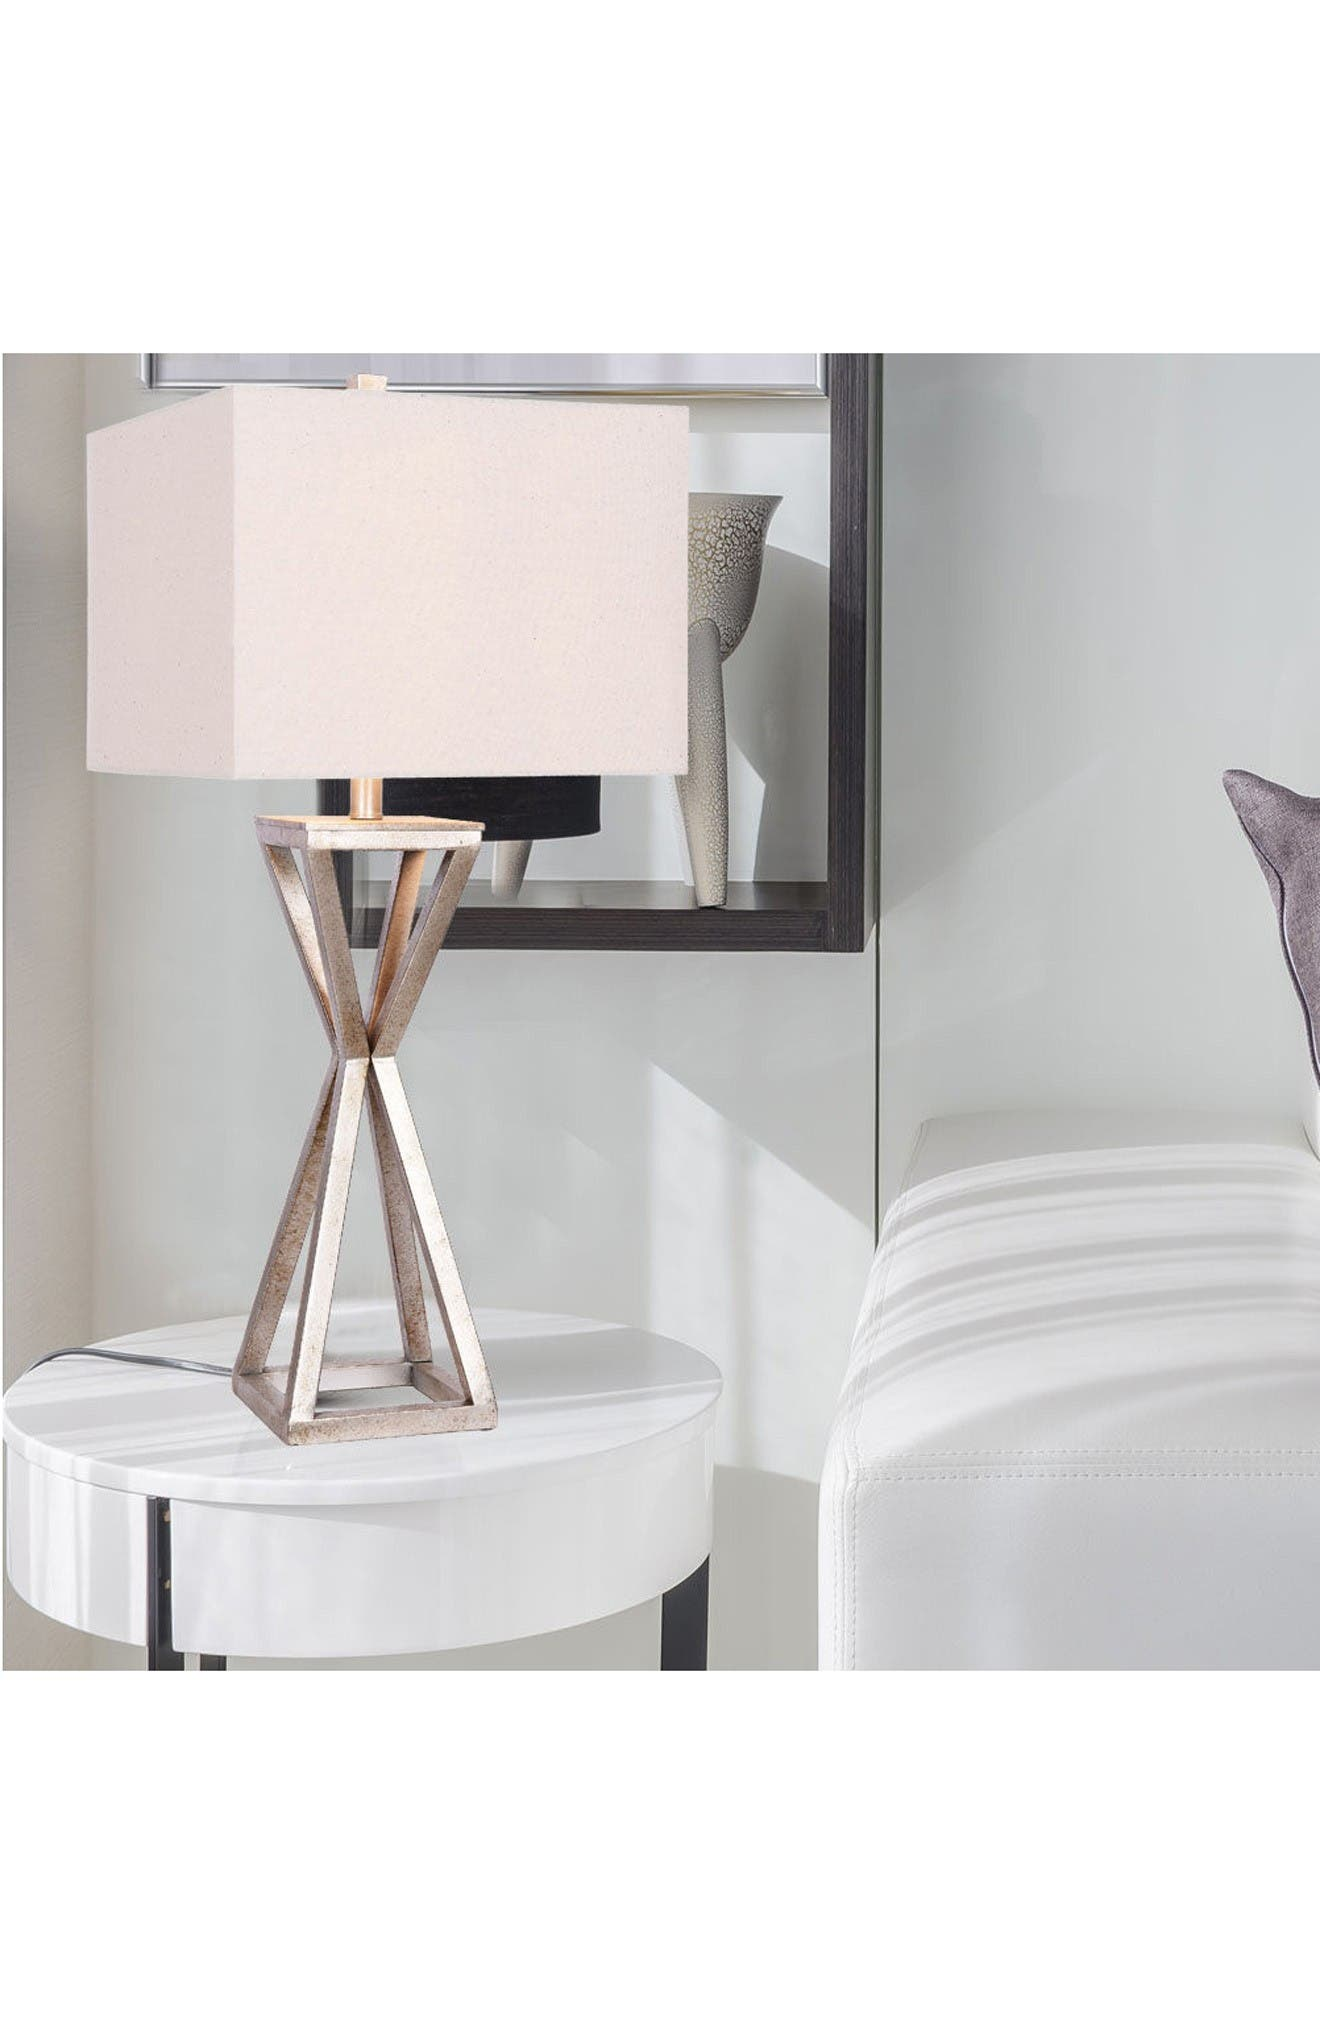 JAlexander Carrie Open Caged Metal Table Lamp,                             Alternate thumbnail 2, color,                             Silver